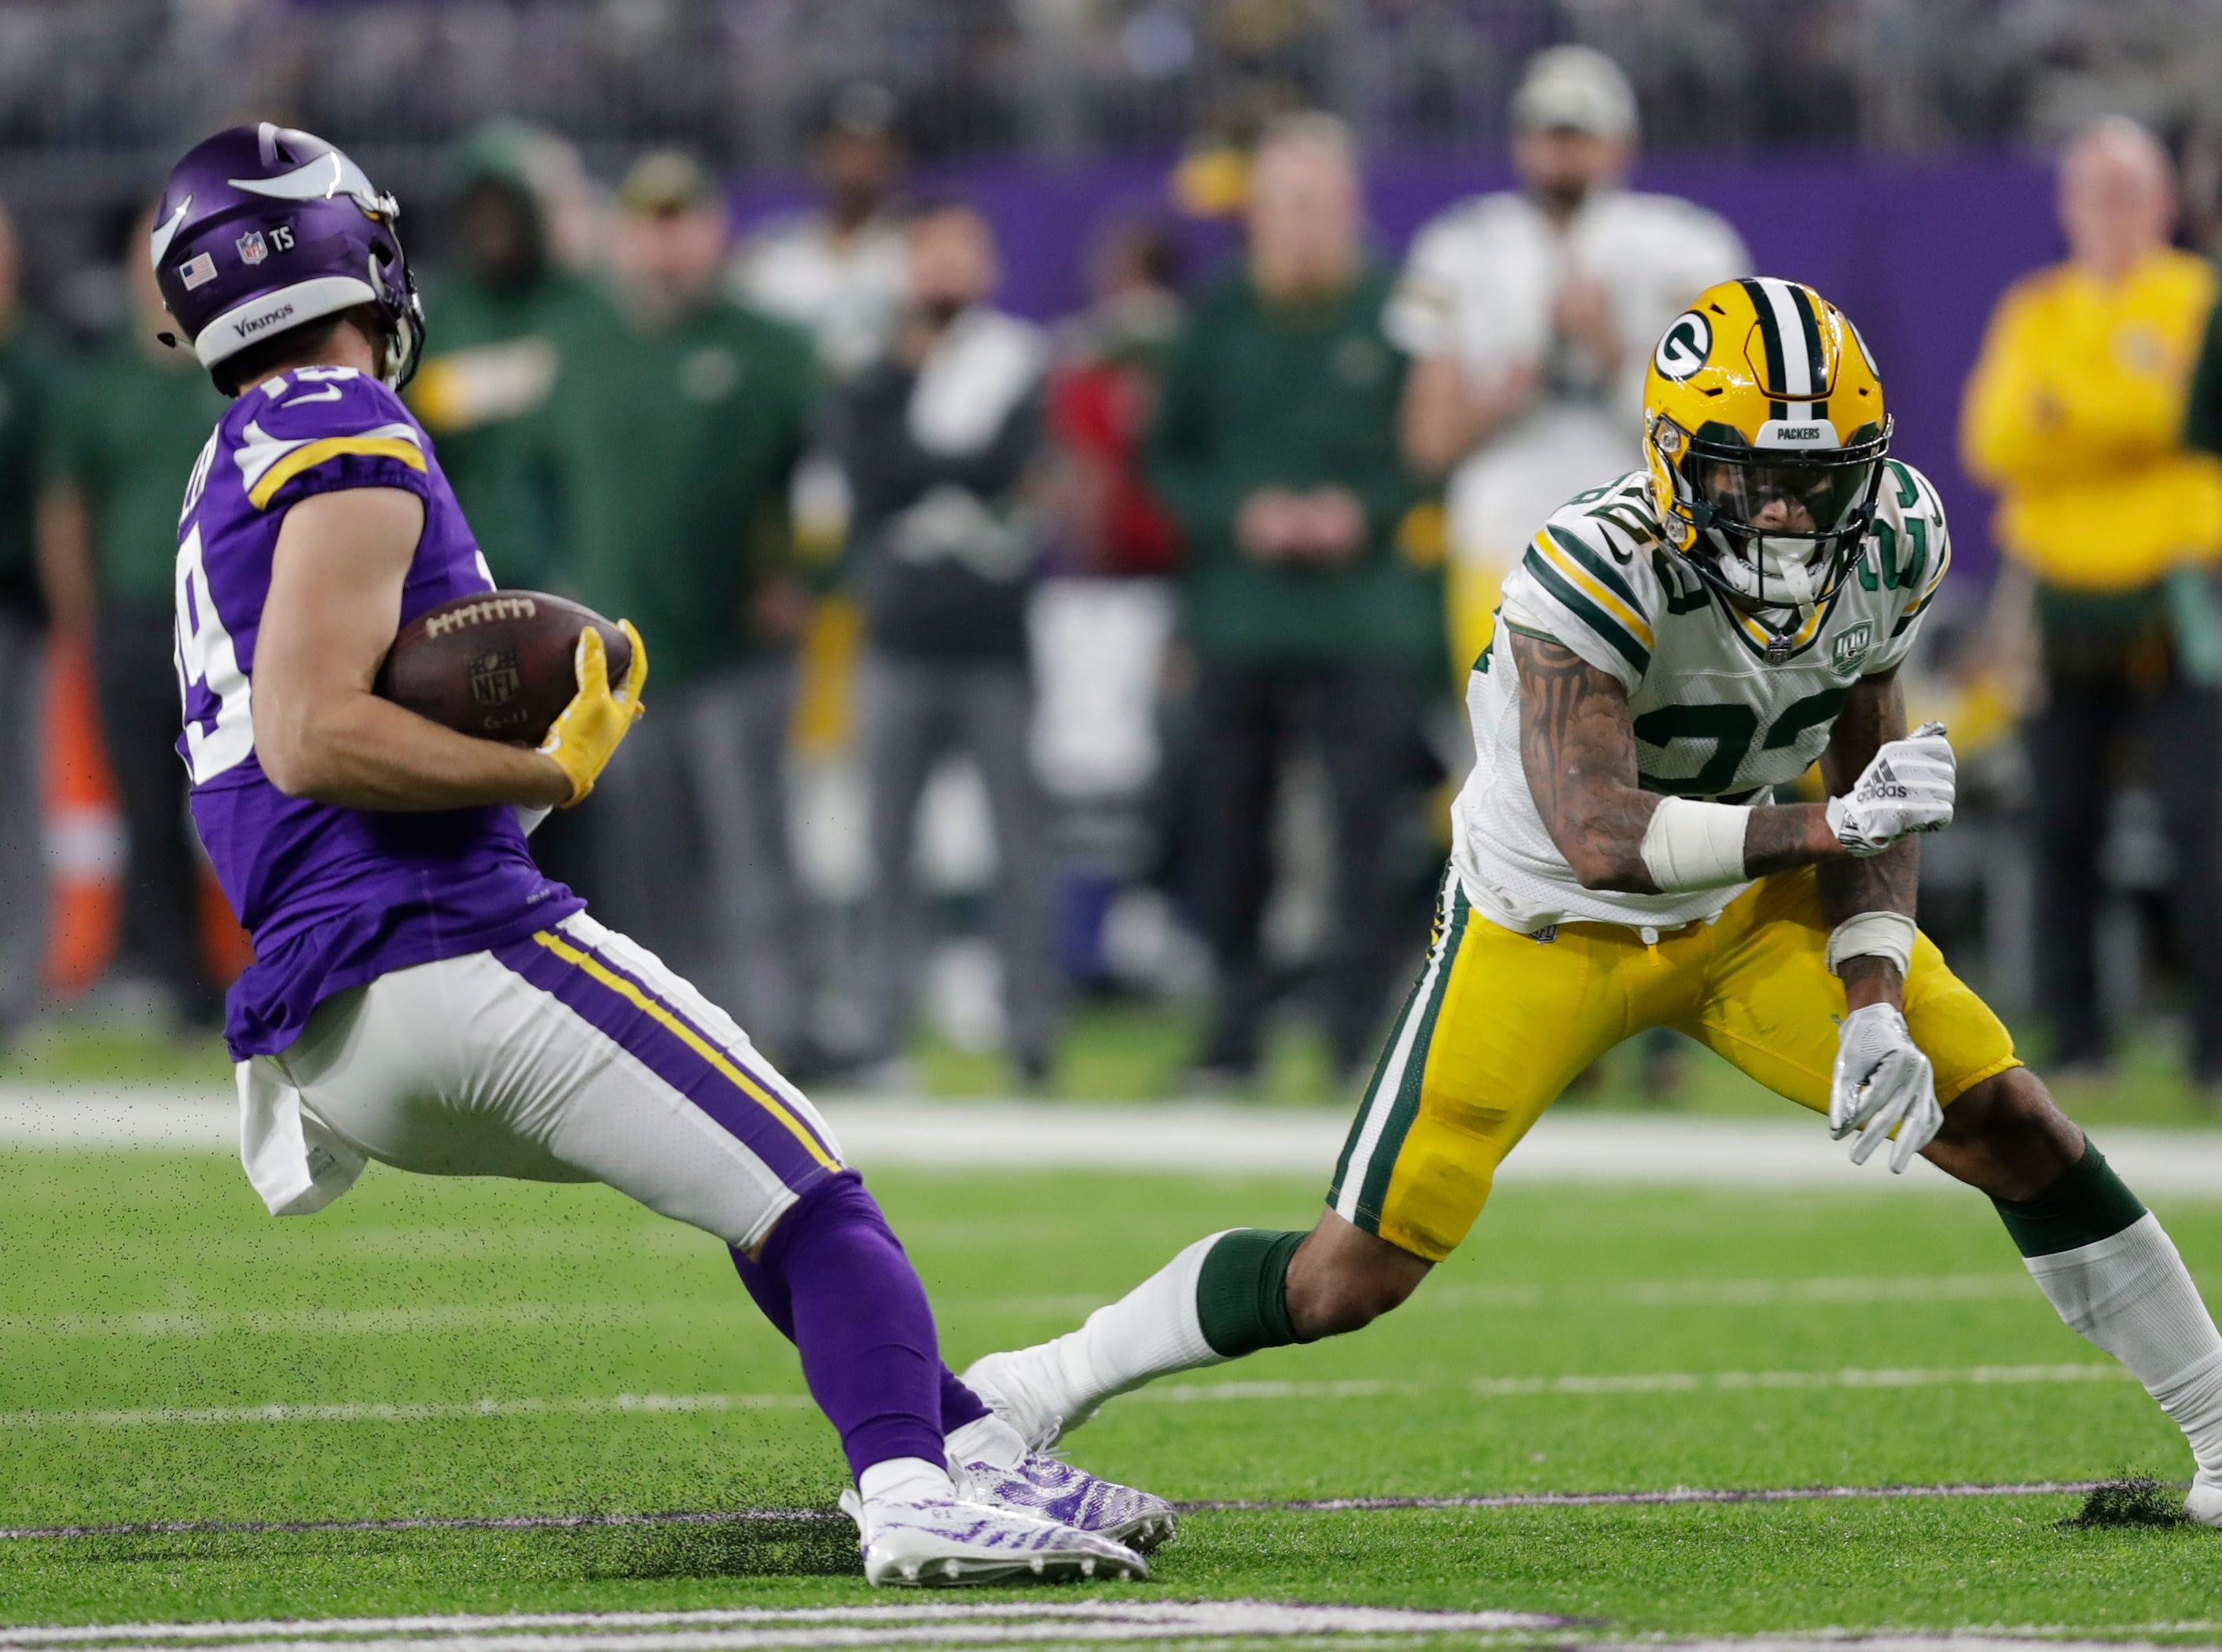 Green Bay Packers cornerback Jaire Alexander (23) misses a tackle against Minnesota Vikings wide receiver Adam Thielen (19) in the second quarter during their football game Sunday, November 25, 2018, at U.S. Bank Stadium in Minneapolis, Minn. 